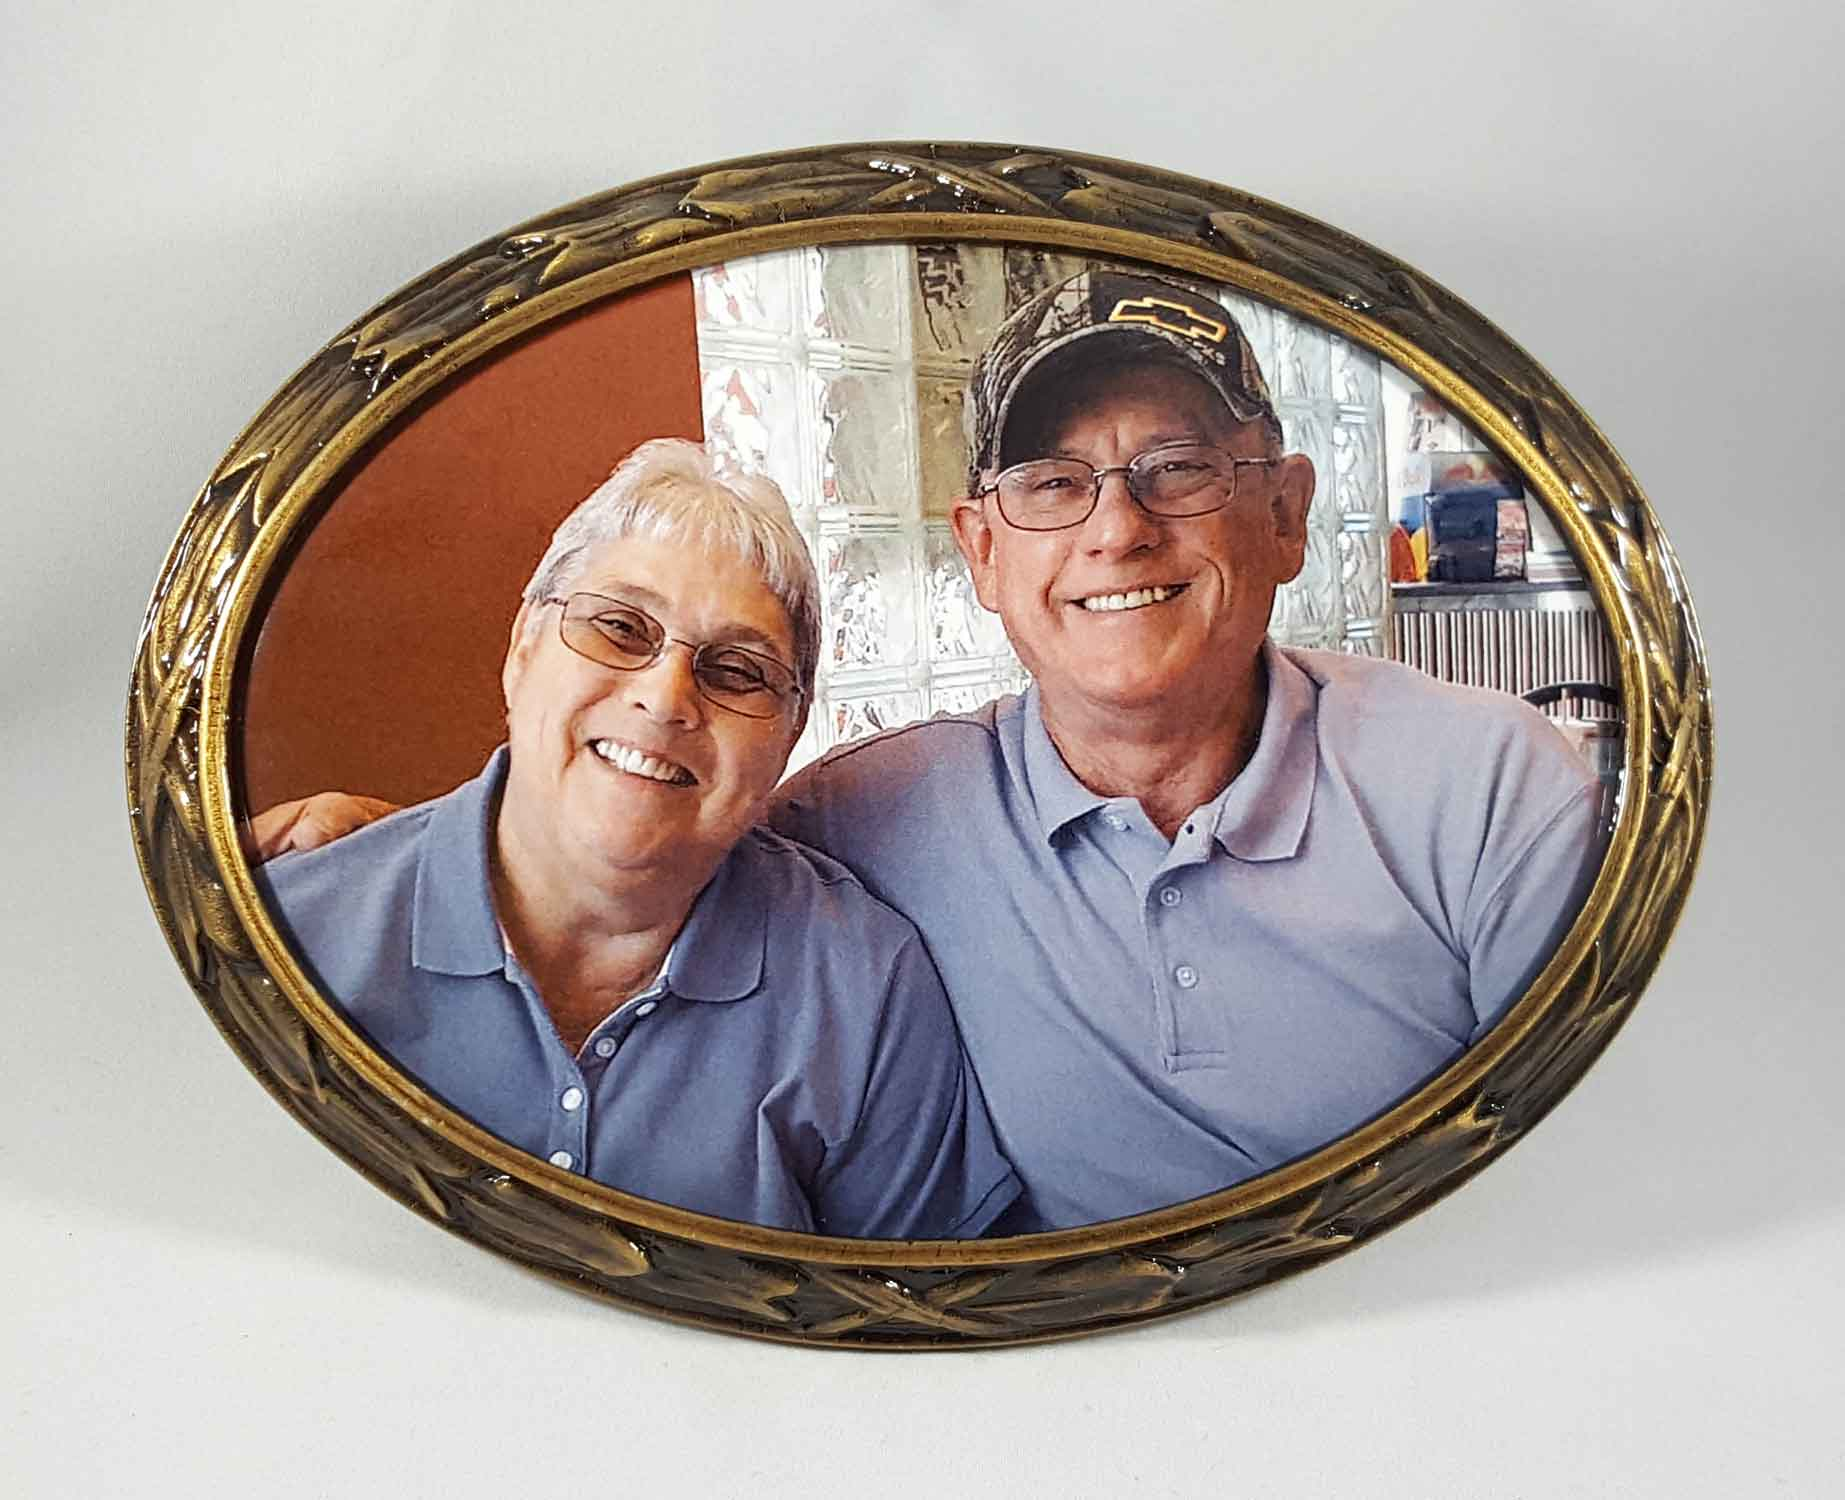 Waterproof Photo Frame for Cemetery